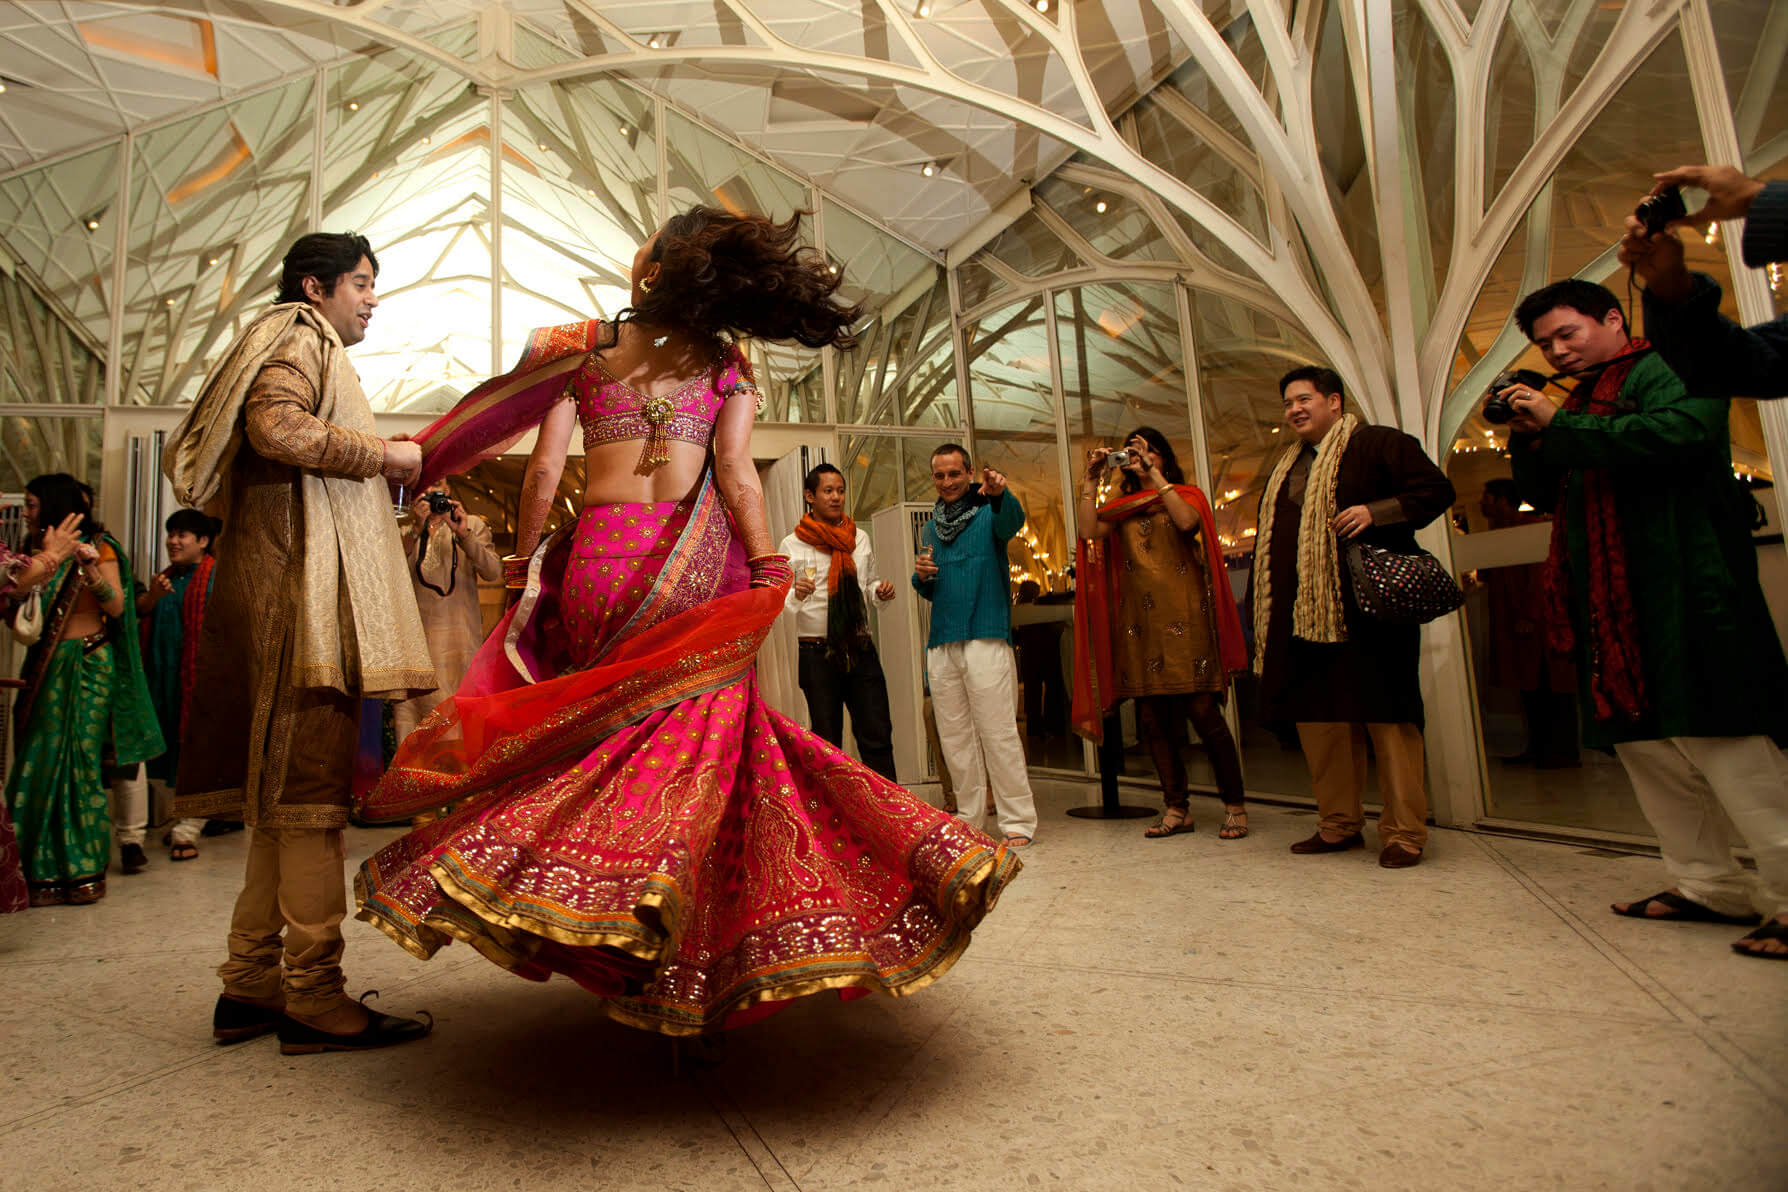 How To Avoid Turning Weddings Into a Media Center - The